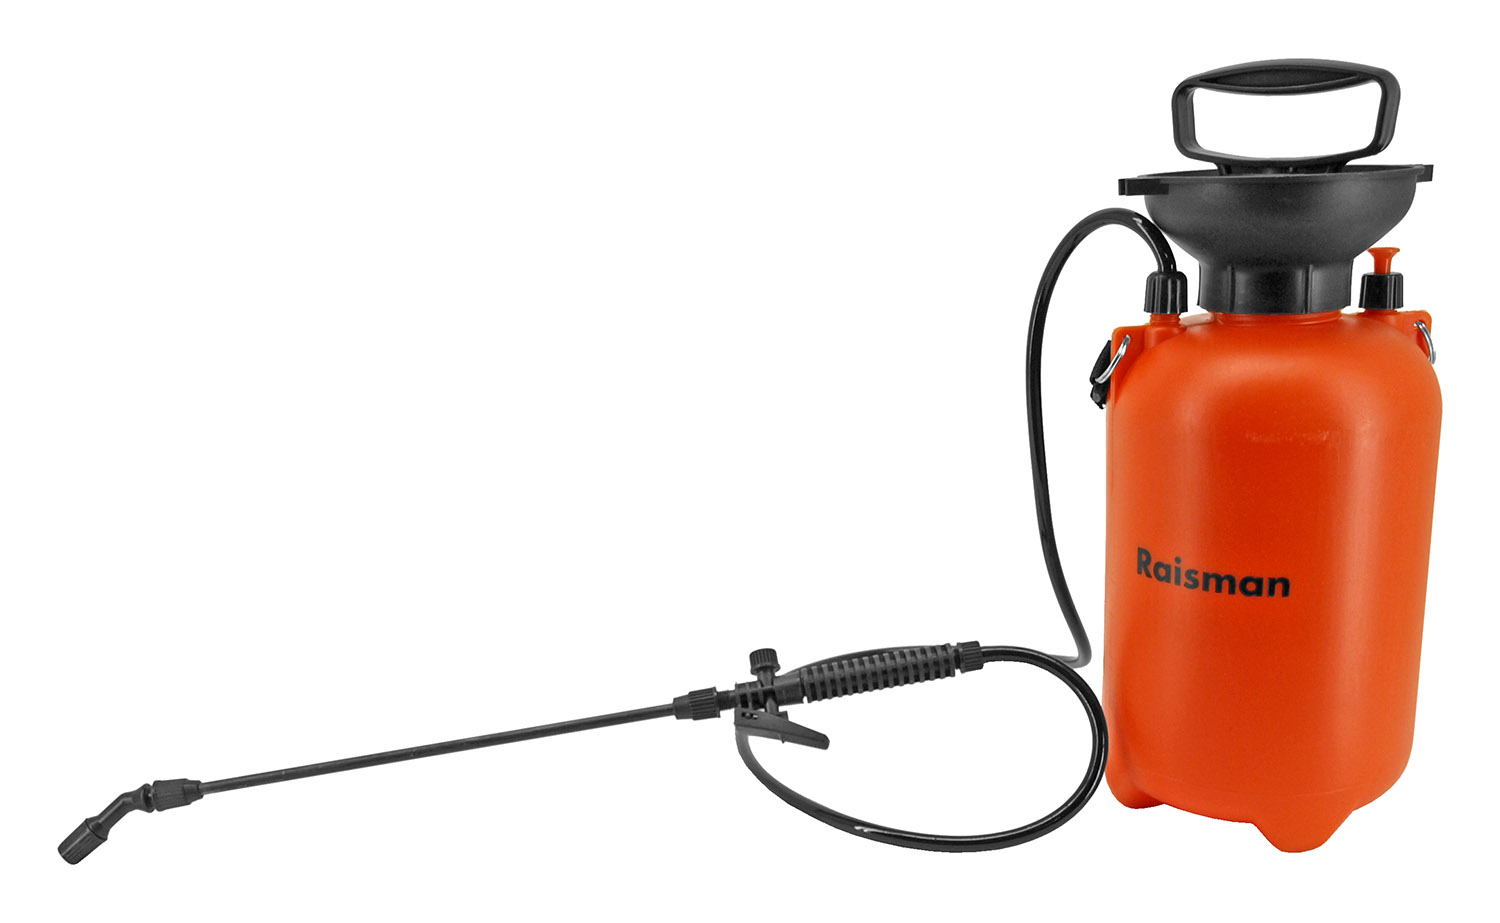 1 Gallon Raisman Manual Sprayer